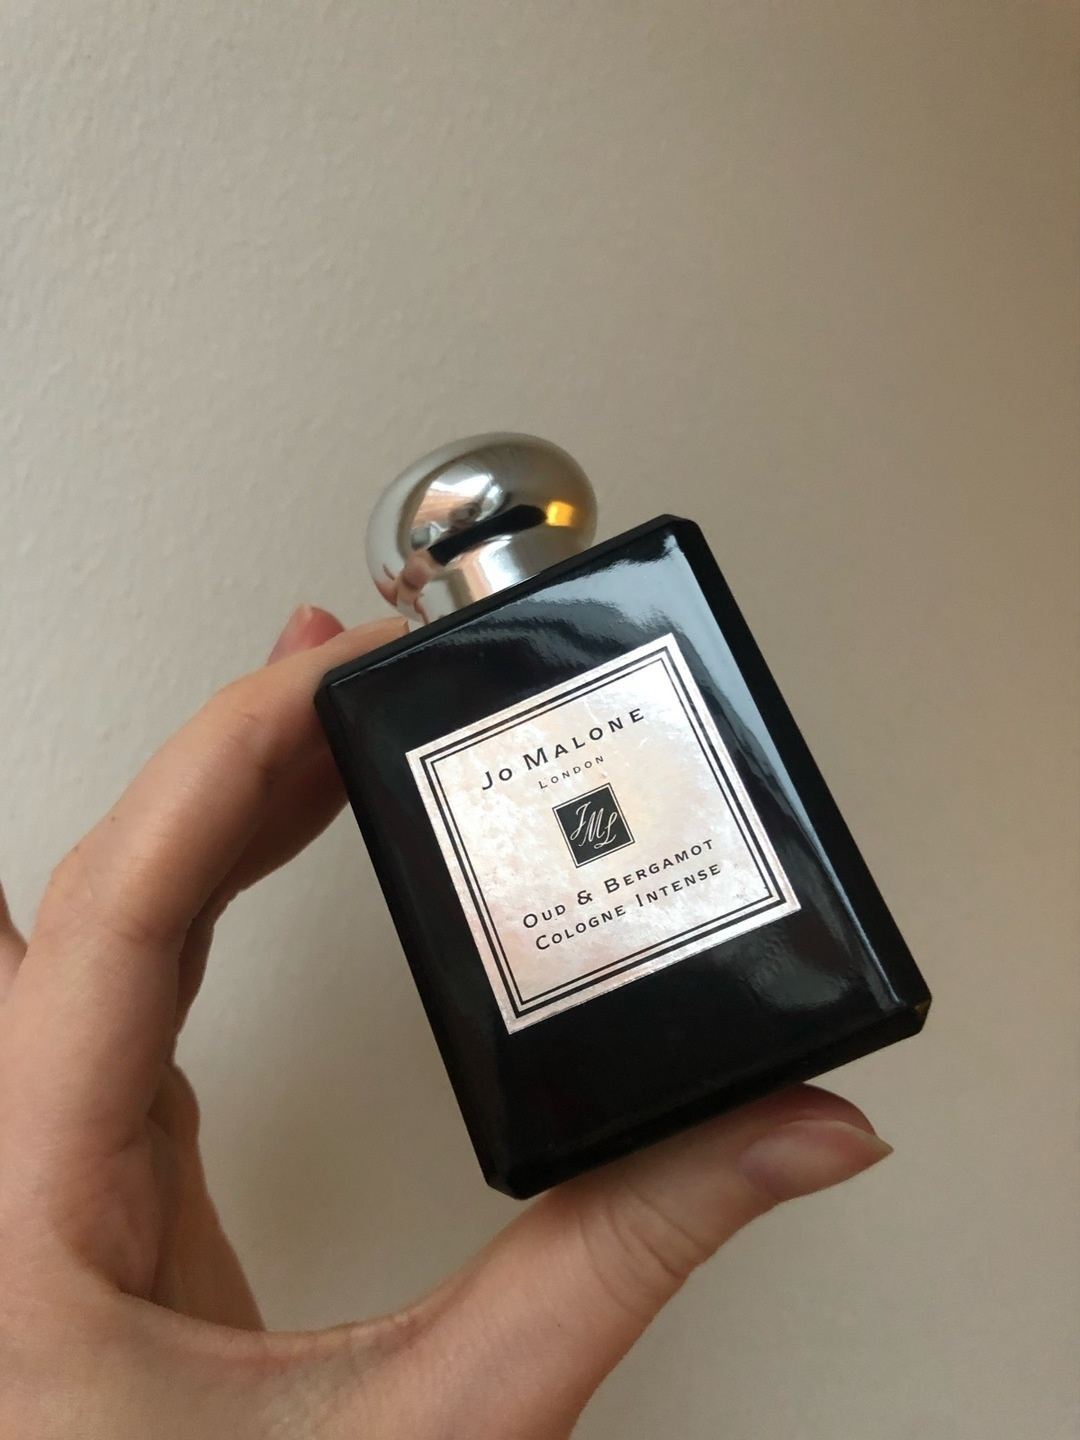 Damen kosmetik & schönheit - JO MALONE photo 1